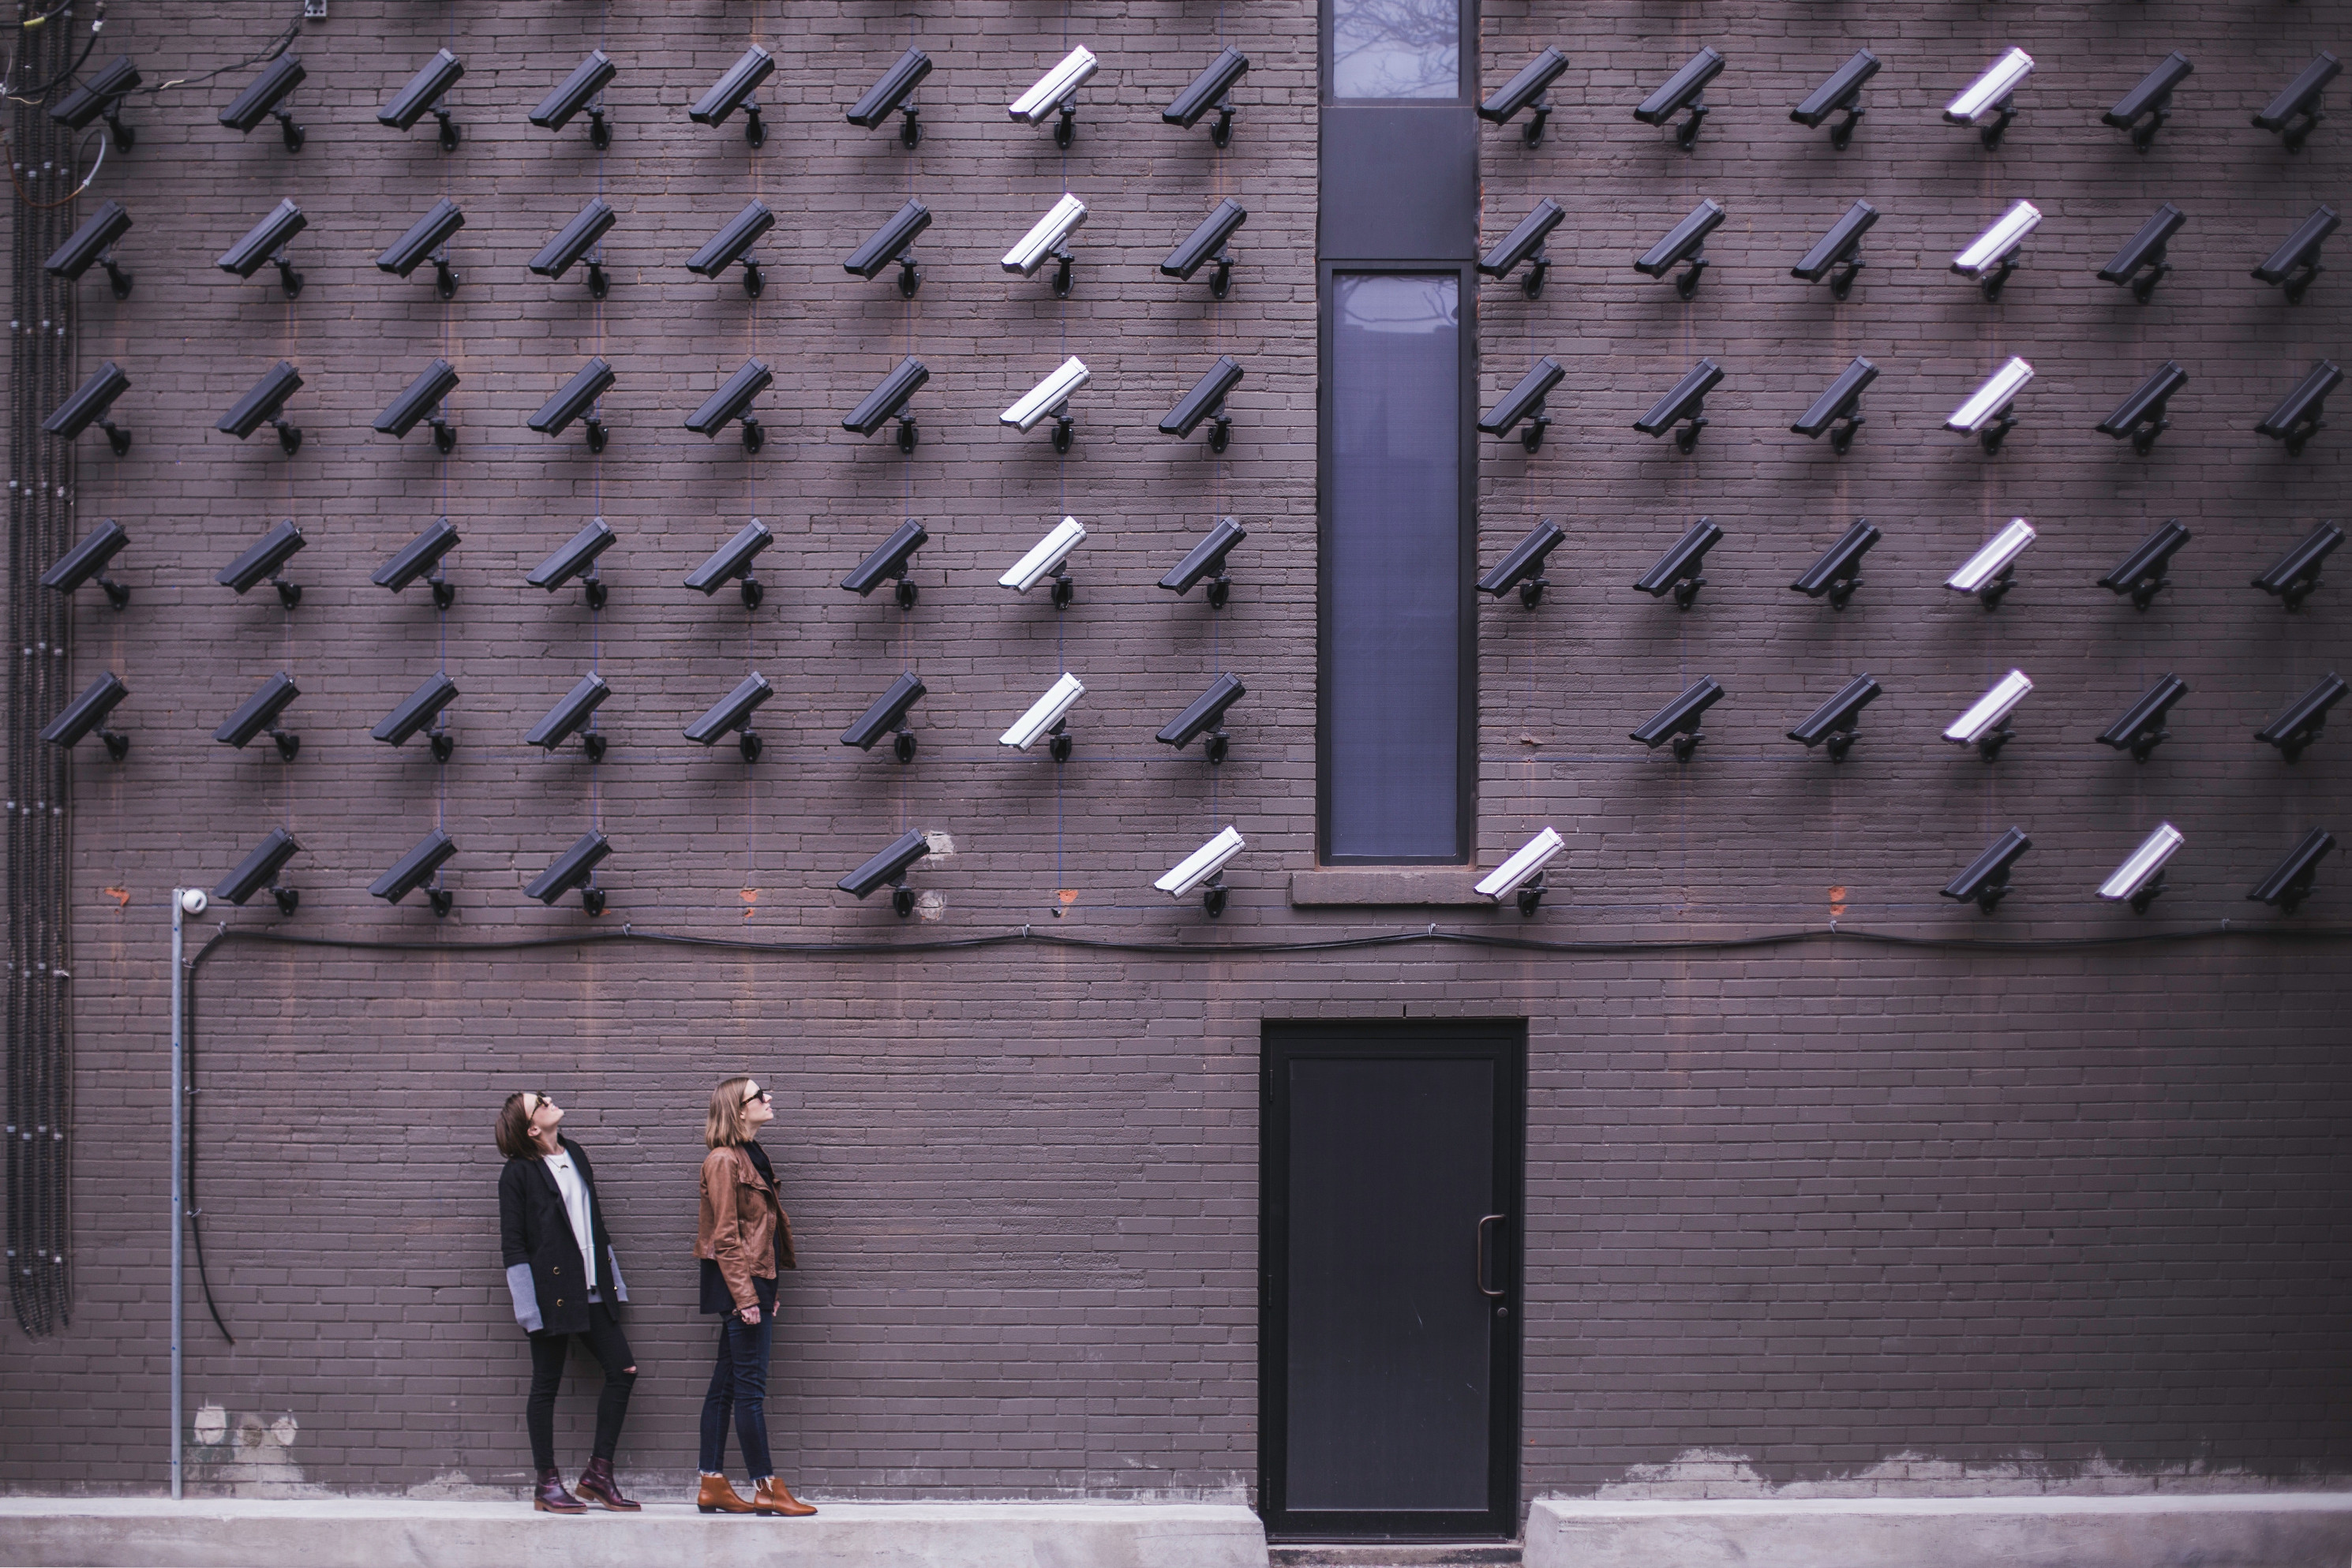 a picture showing a wall of CCTV